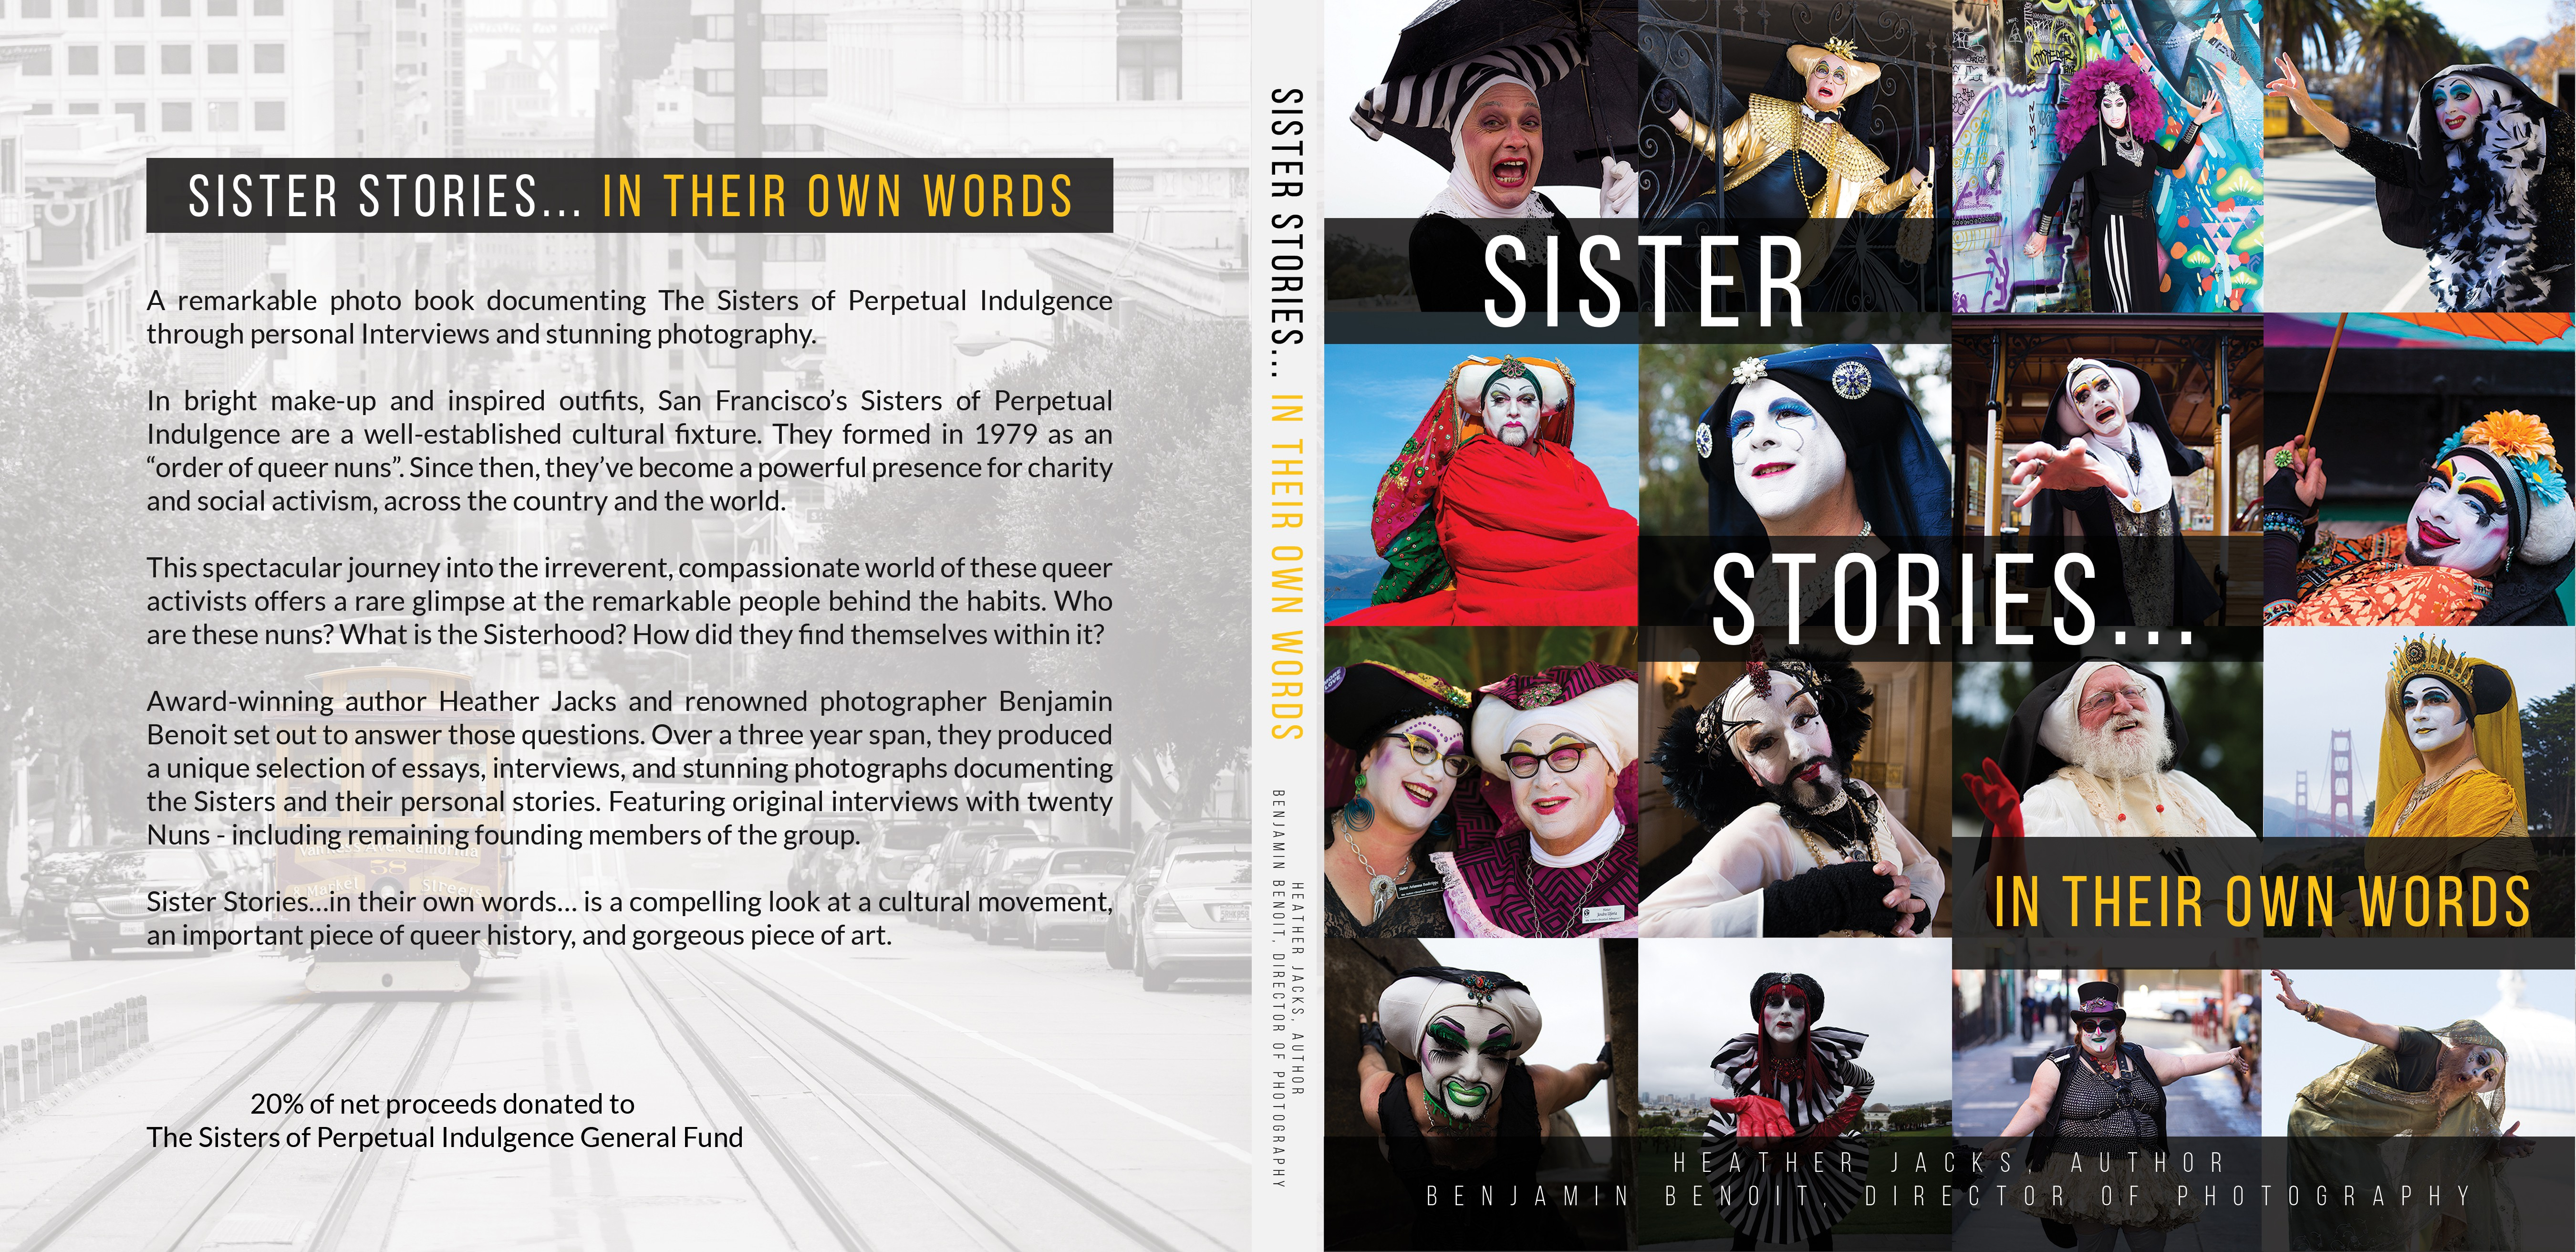 The Sisters...in their own words